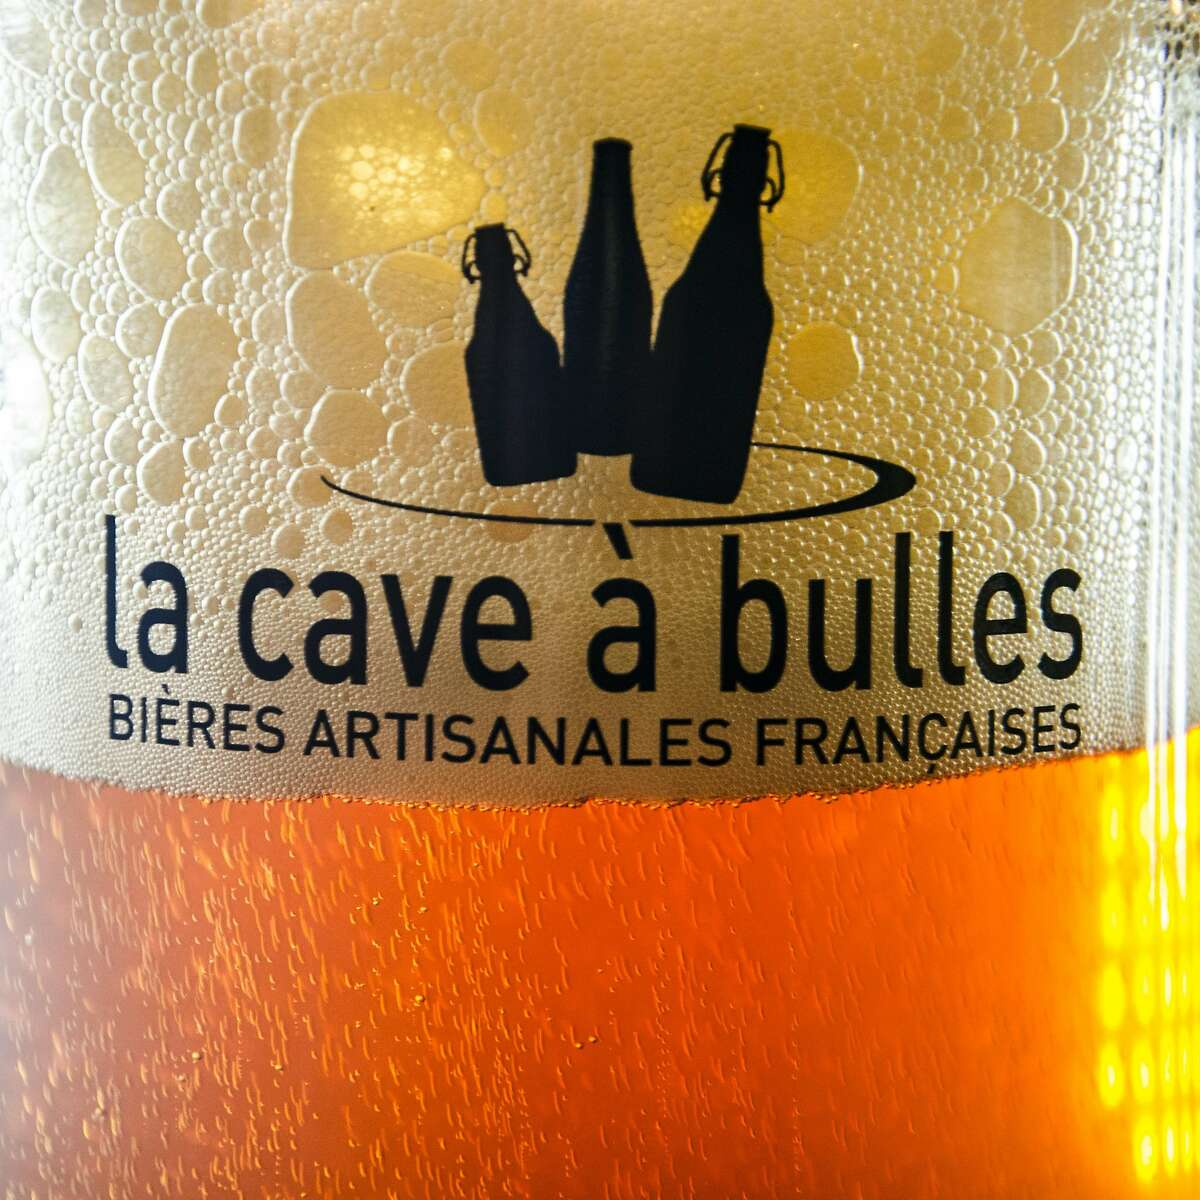 La Cave a Bulles (the Cellar of Bubbles), houses more than 350 different types of beer, two-thirds of which are brewed in France, including this Cuv�e des Jonquilles by Brasserie au Baron of Gussignies.